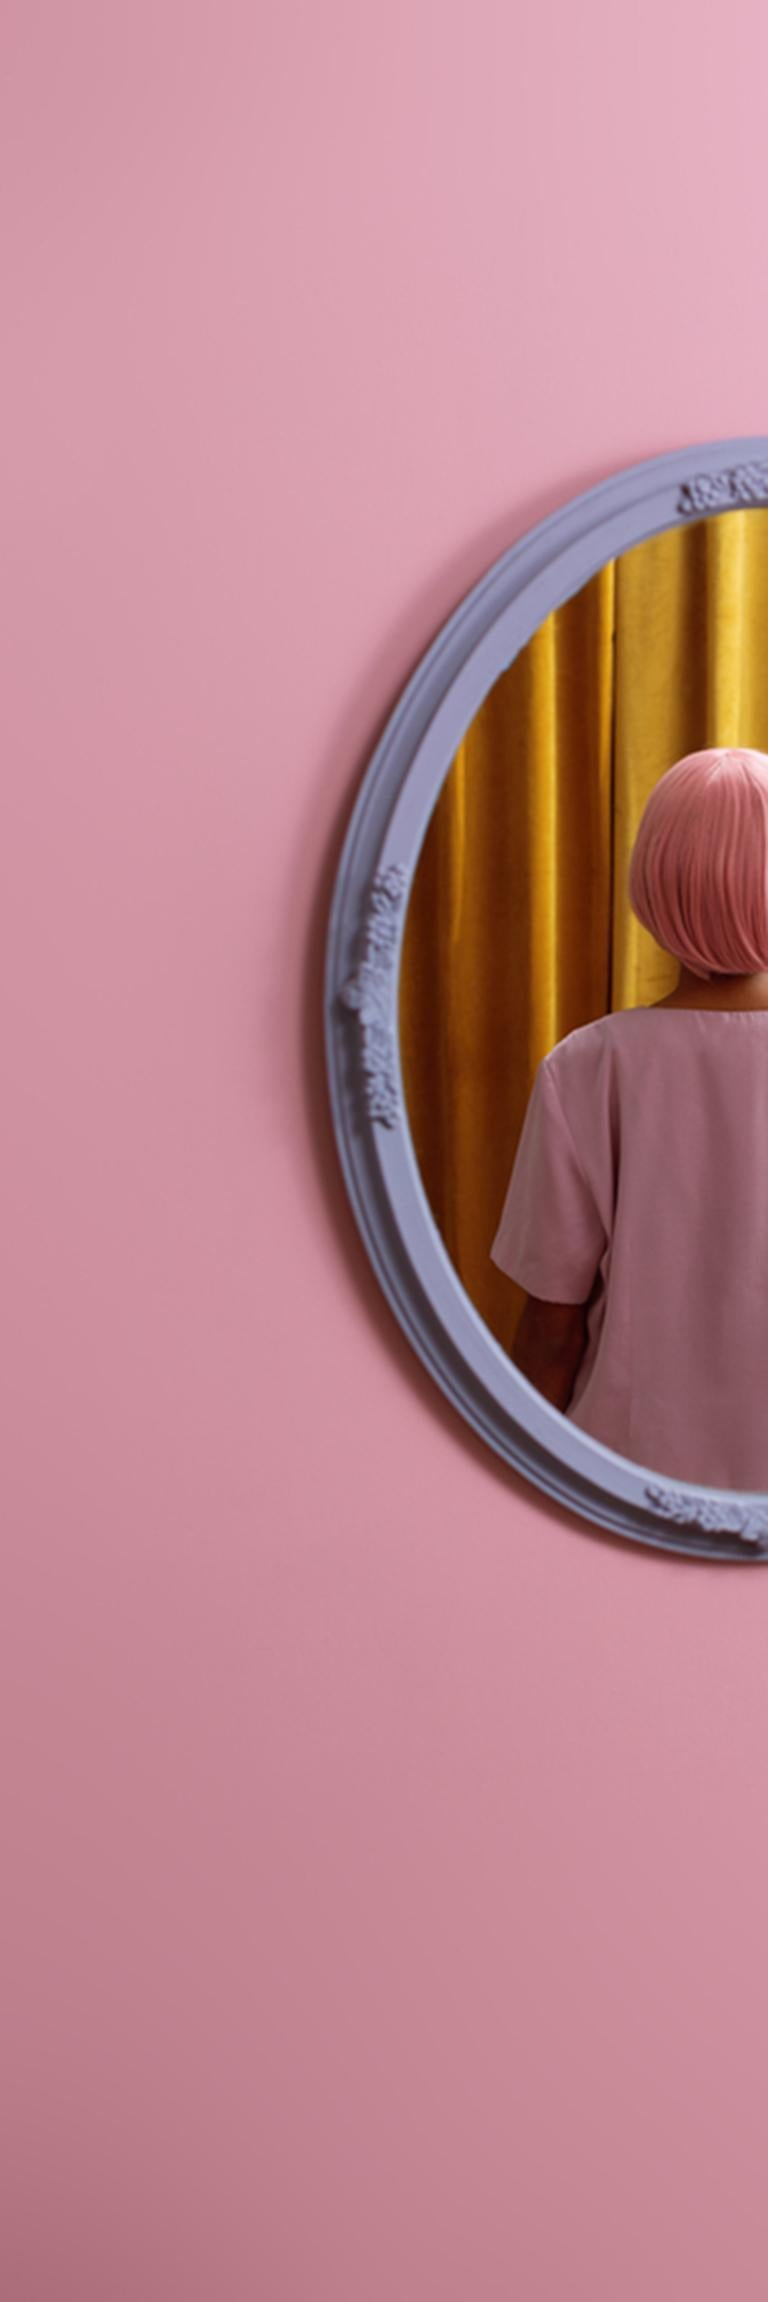 I don't see myself - Abstract pop pink & yellow self-portrait in oval mirror - Photograph by Karen Navarro